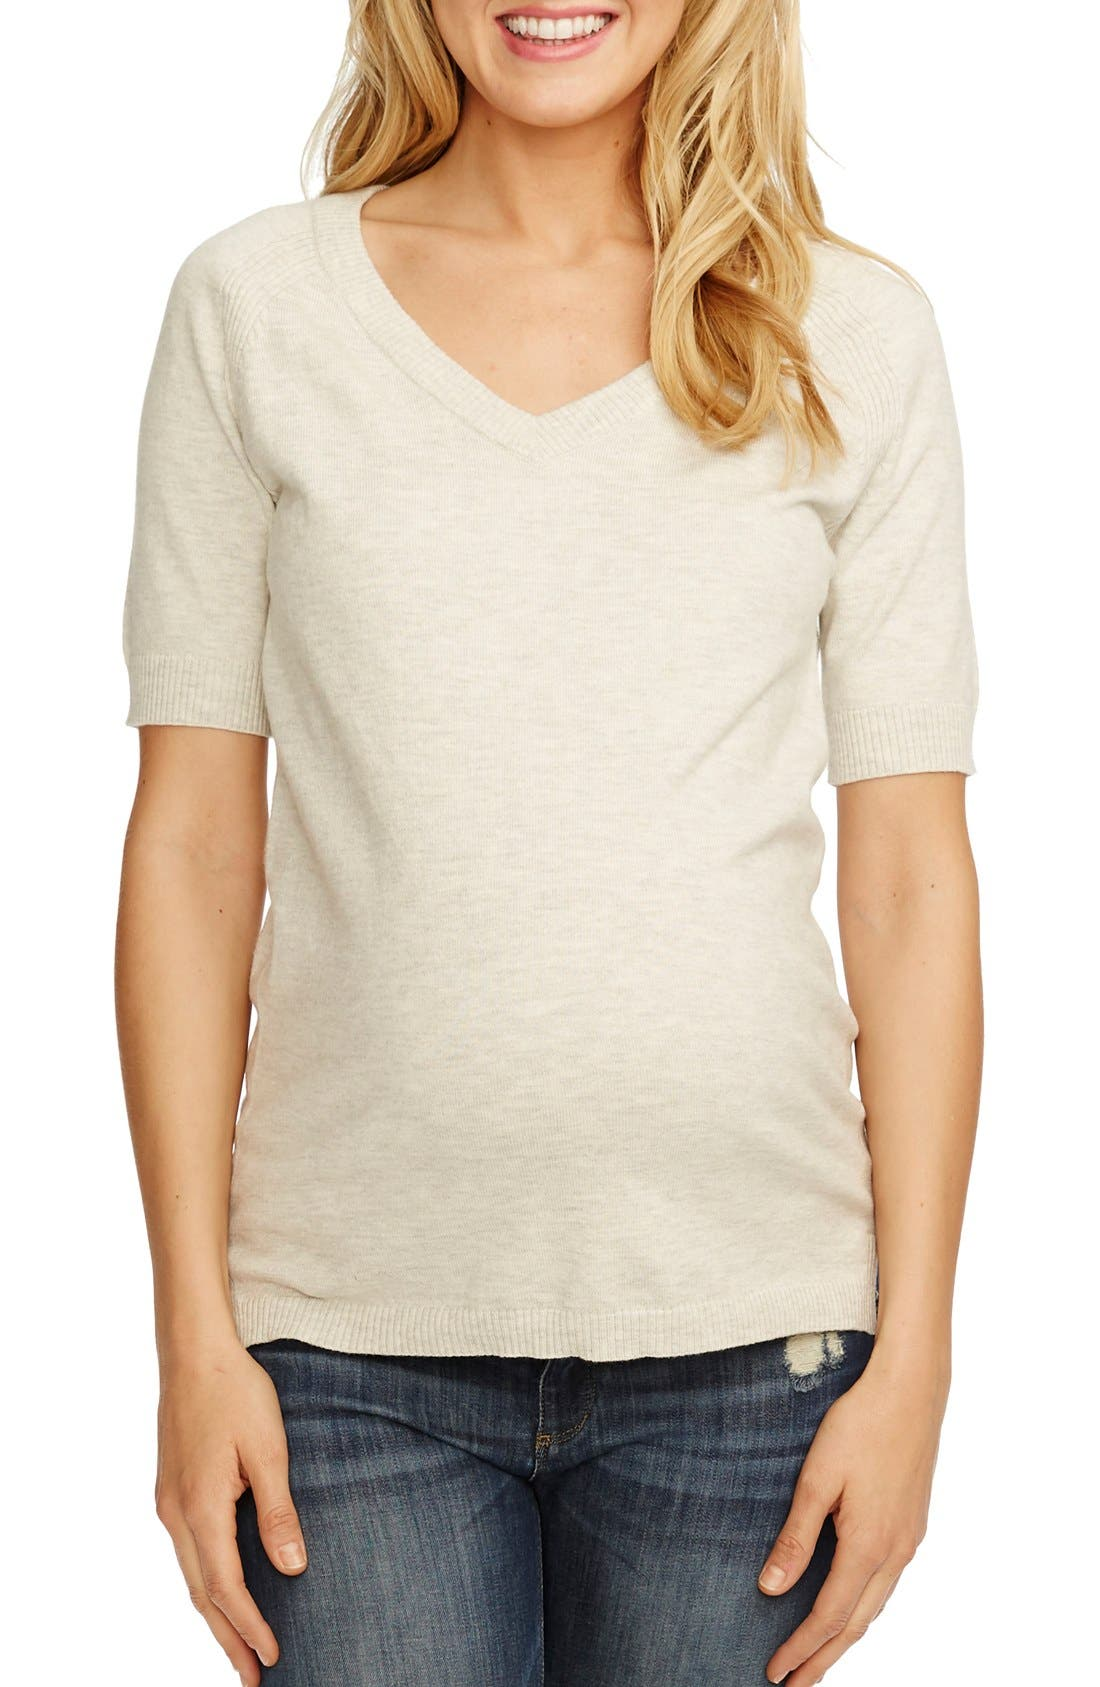 'Avery' V-Neck Maternity Sweater,                         Main,                         color, Ivory Heather